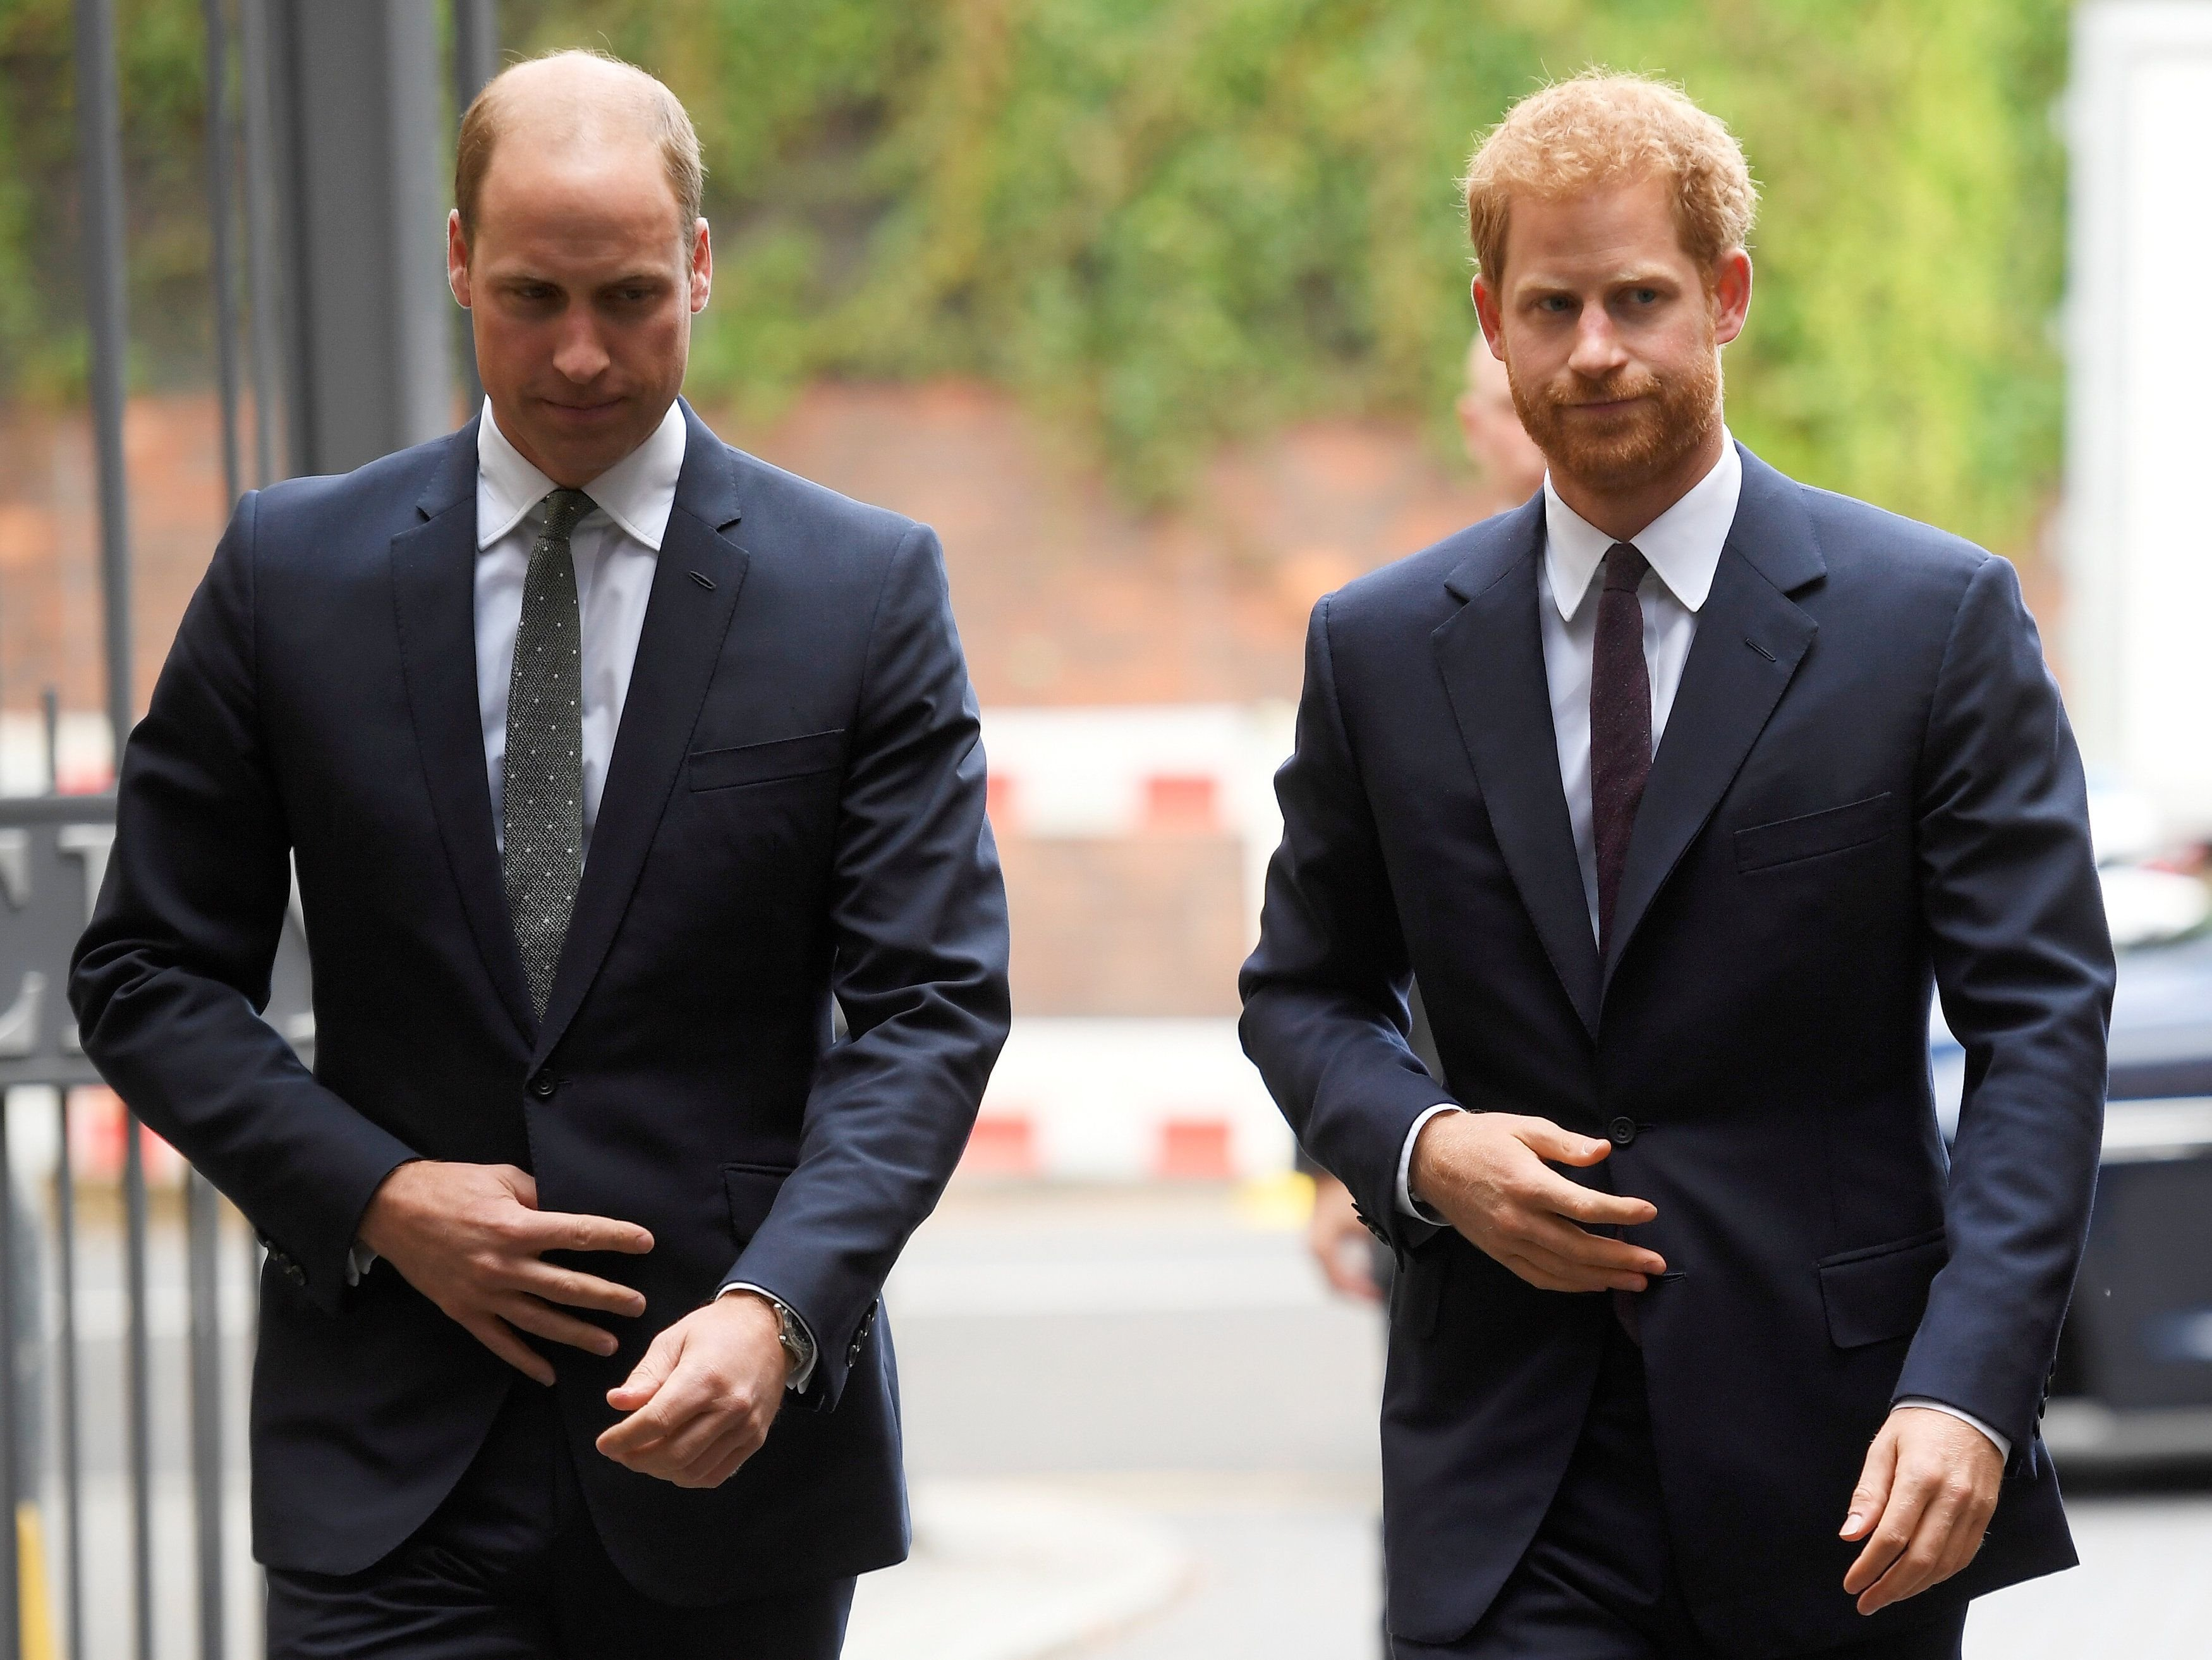 Prince William, Duke of Cambridge, with his younger brother Prince Harry during a visit to the newly established Royal Foundation Support4Grenfell community hub in London, England | Photo: Toby Melville - WPA Pool / Getty Images